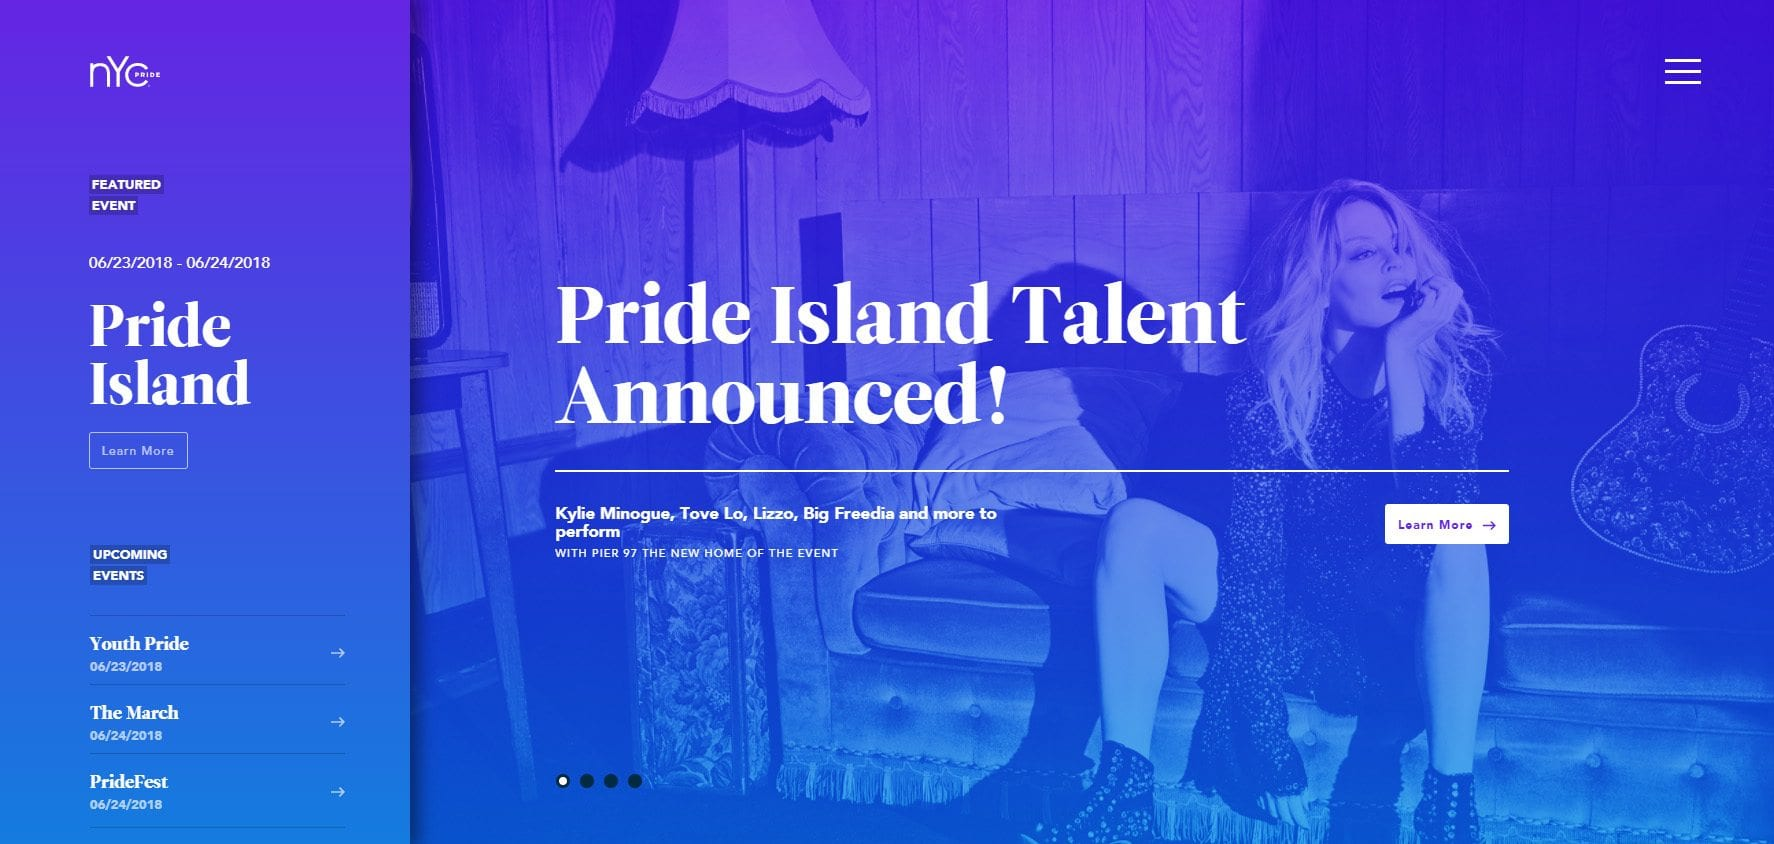 Pride Gradient image website